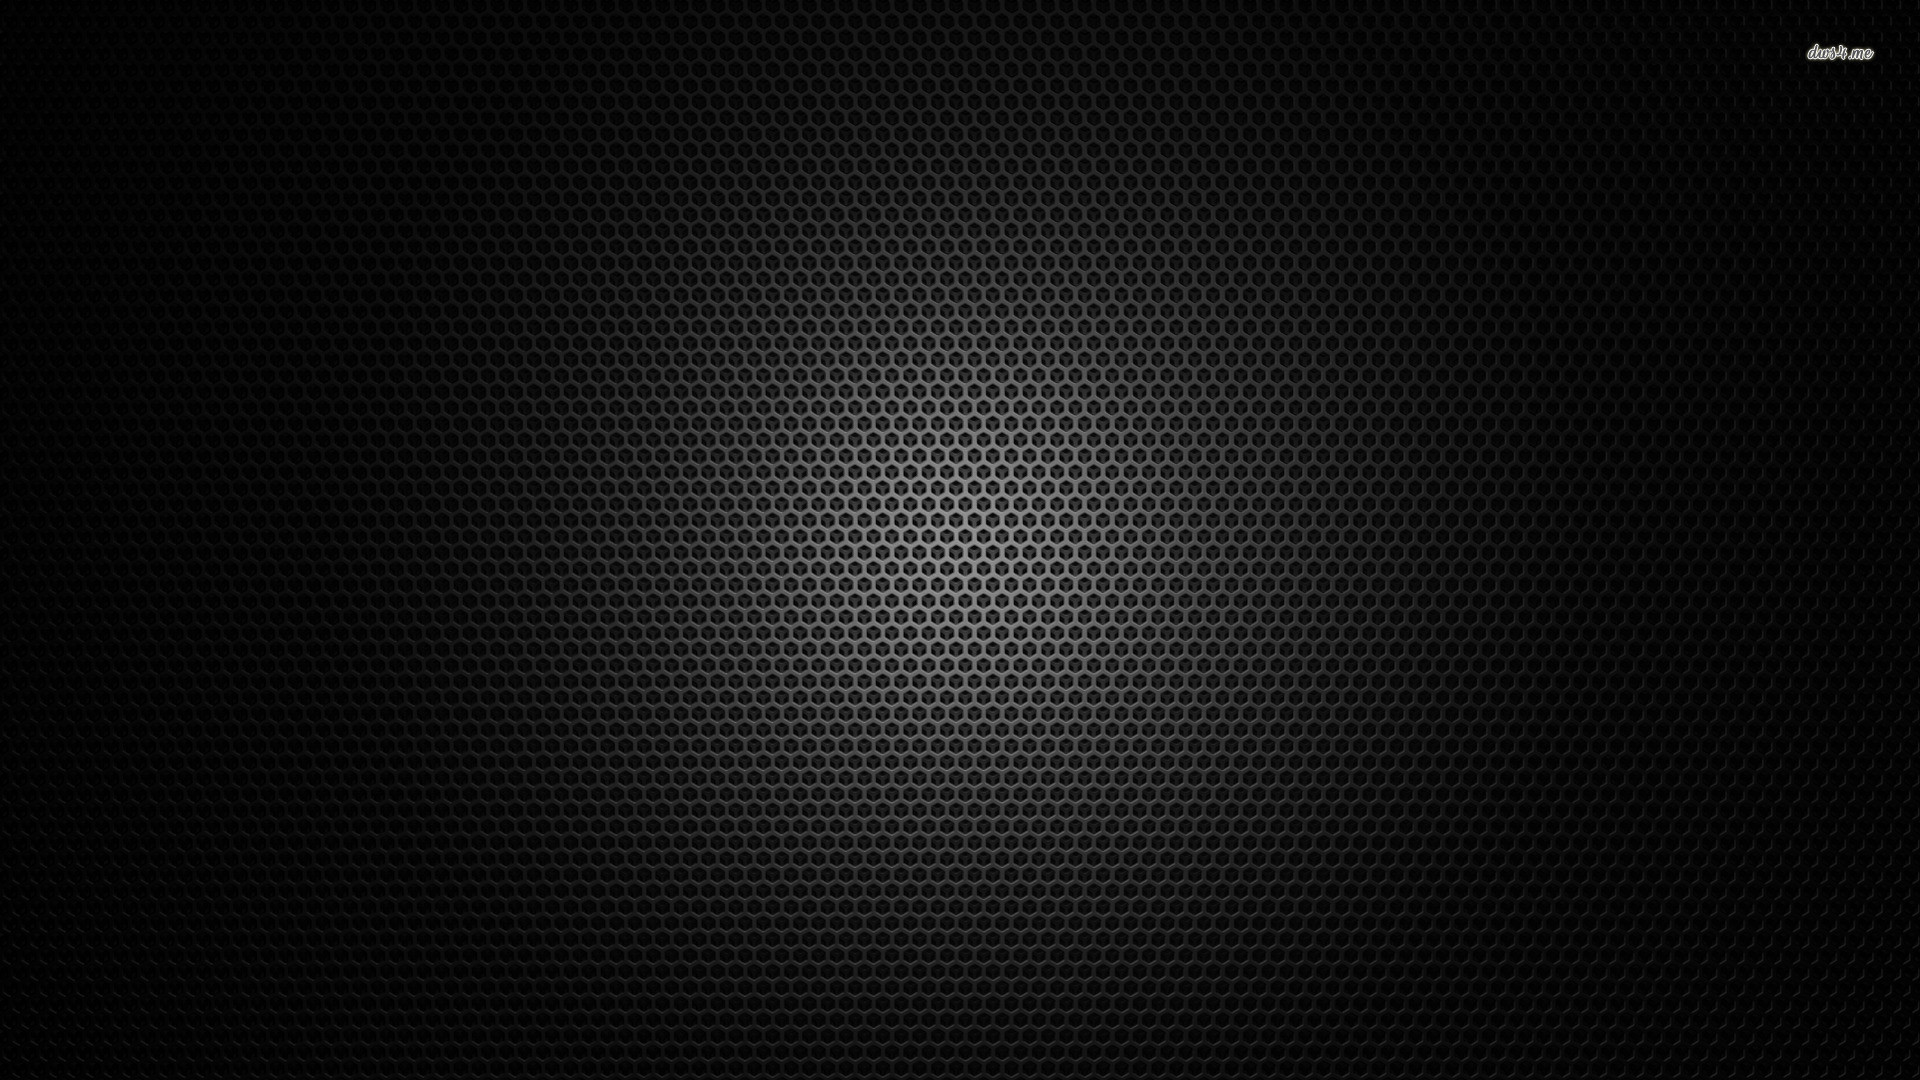 1920x1080 carbon fiber wallpaper high definition with wallpaper hd resolution on .